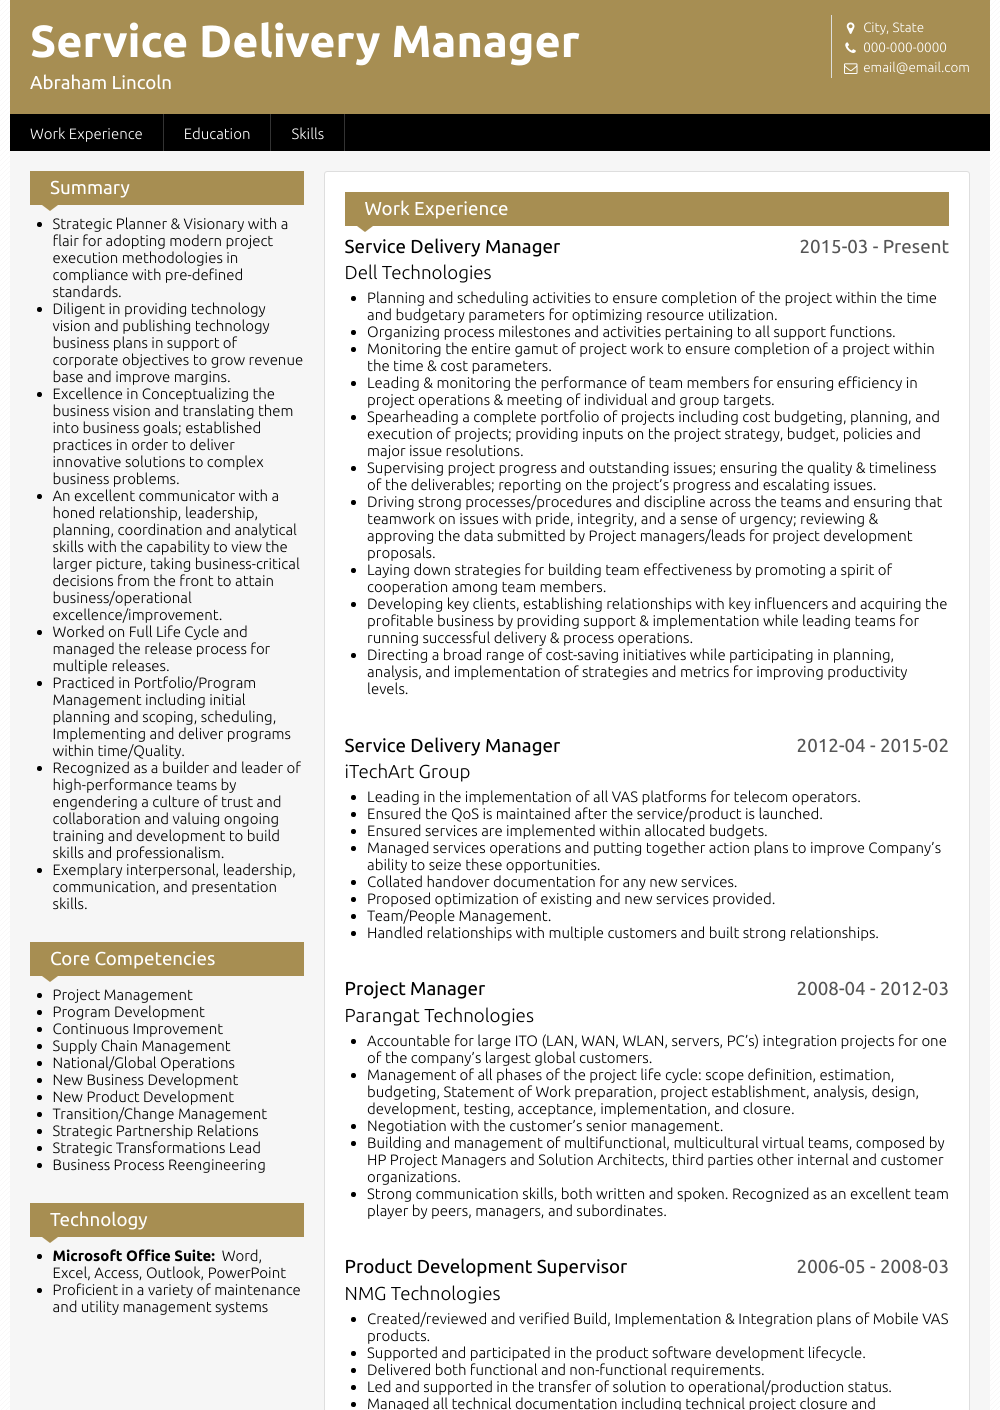 Service Delivery Manager Resume Sample